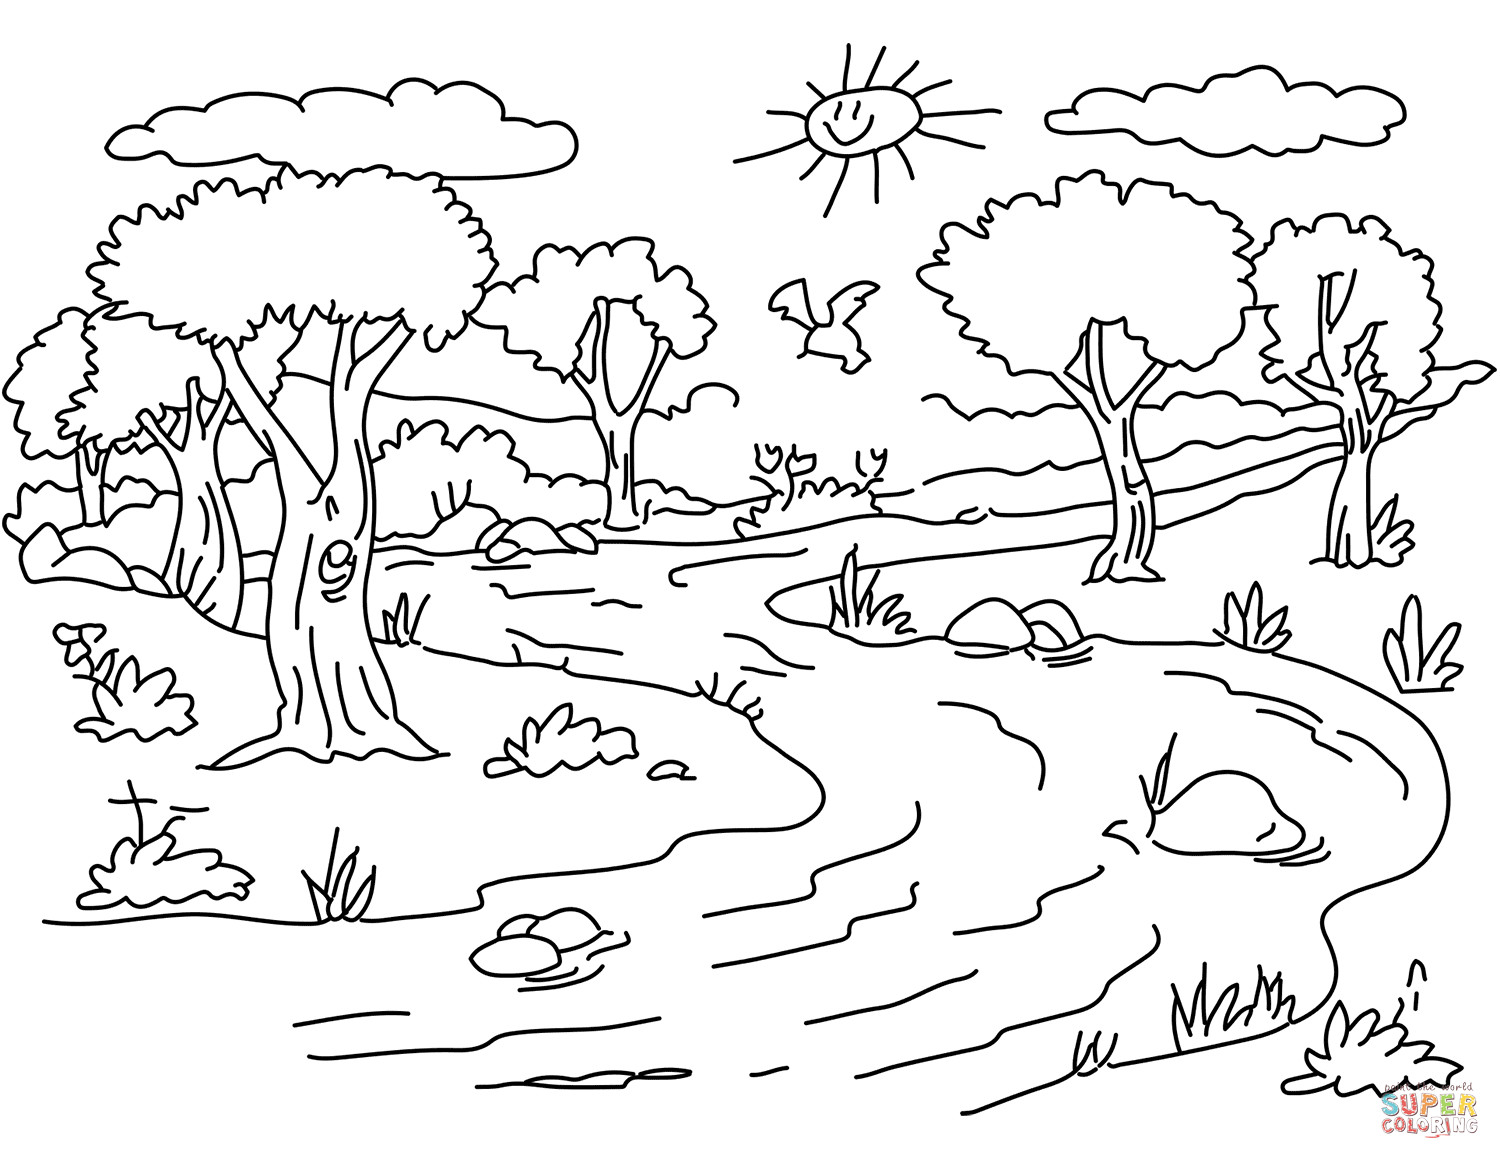 Best ideas about River Coloring Pages . Save or Pin River Landscape coloring page Now.